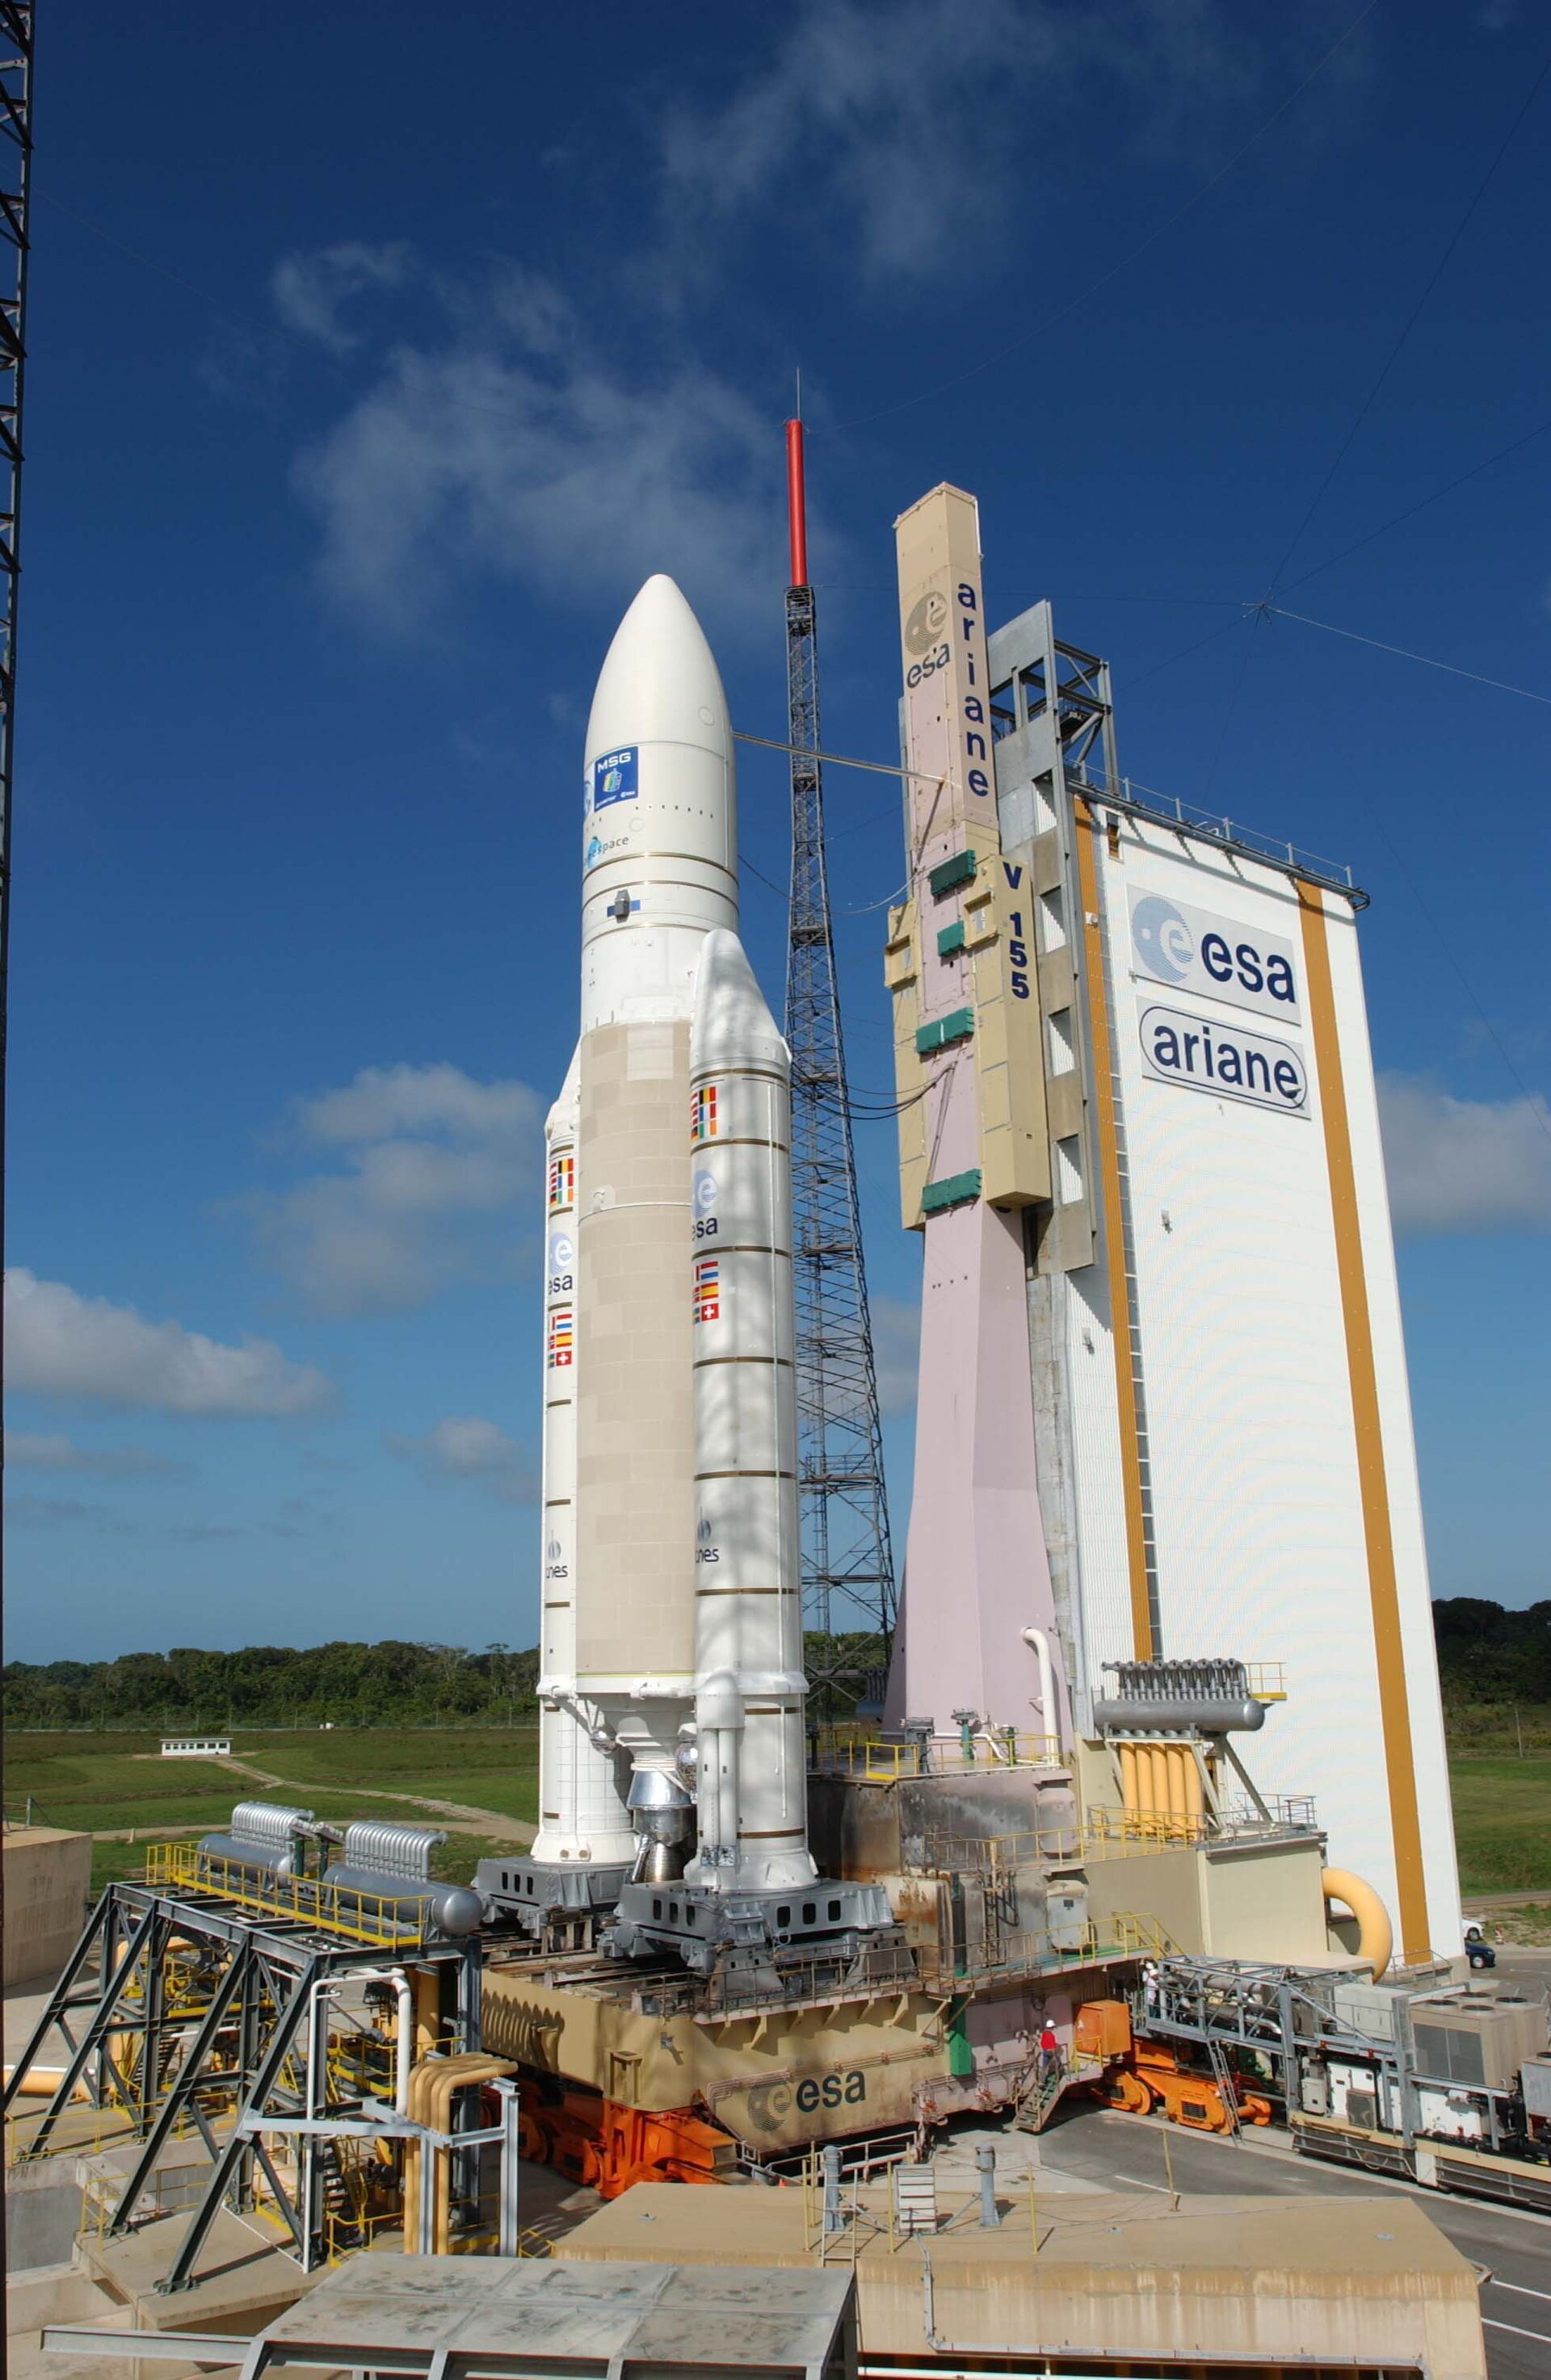 The European launcher Ariane 5 on its launch pad on ZL3